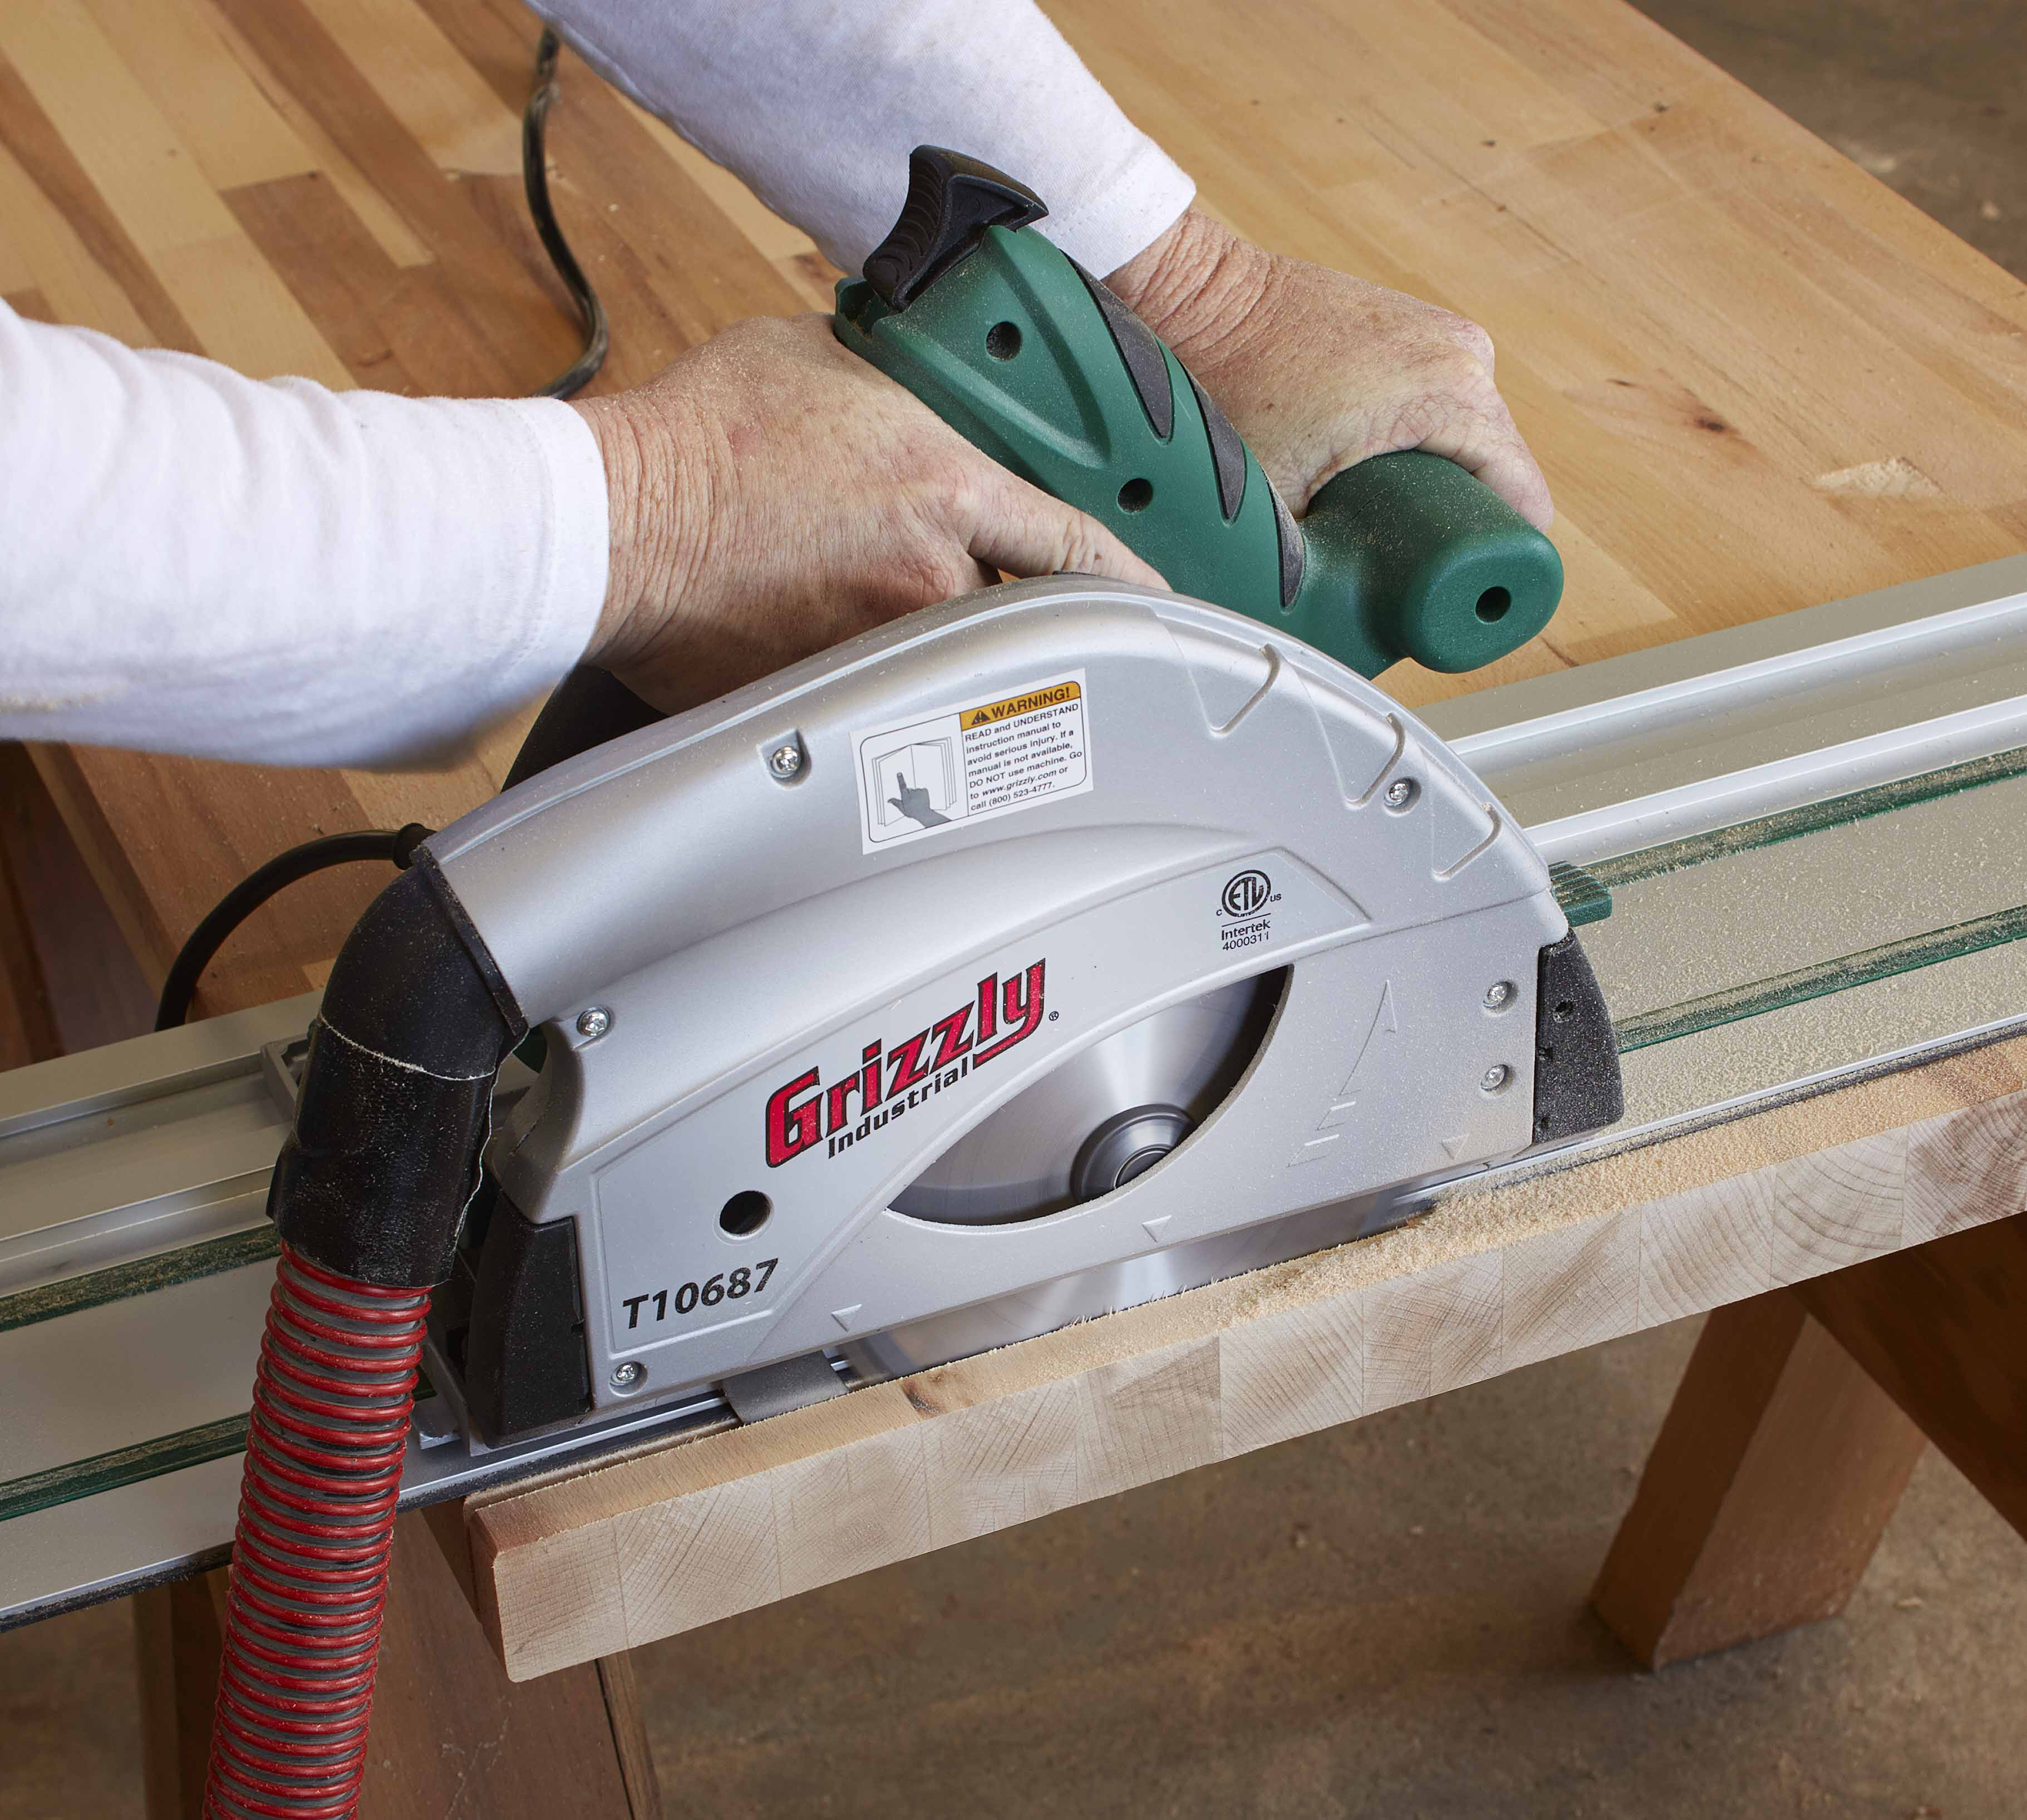 Woodworking Tools Reviews With Fantastic Innovation In Uk ...